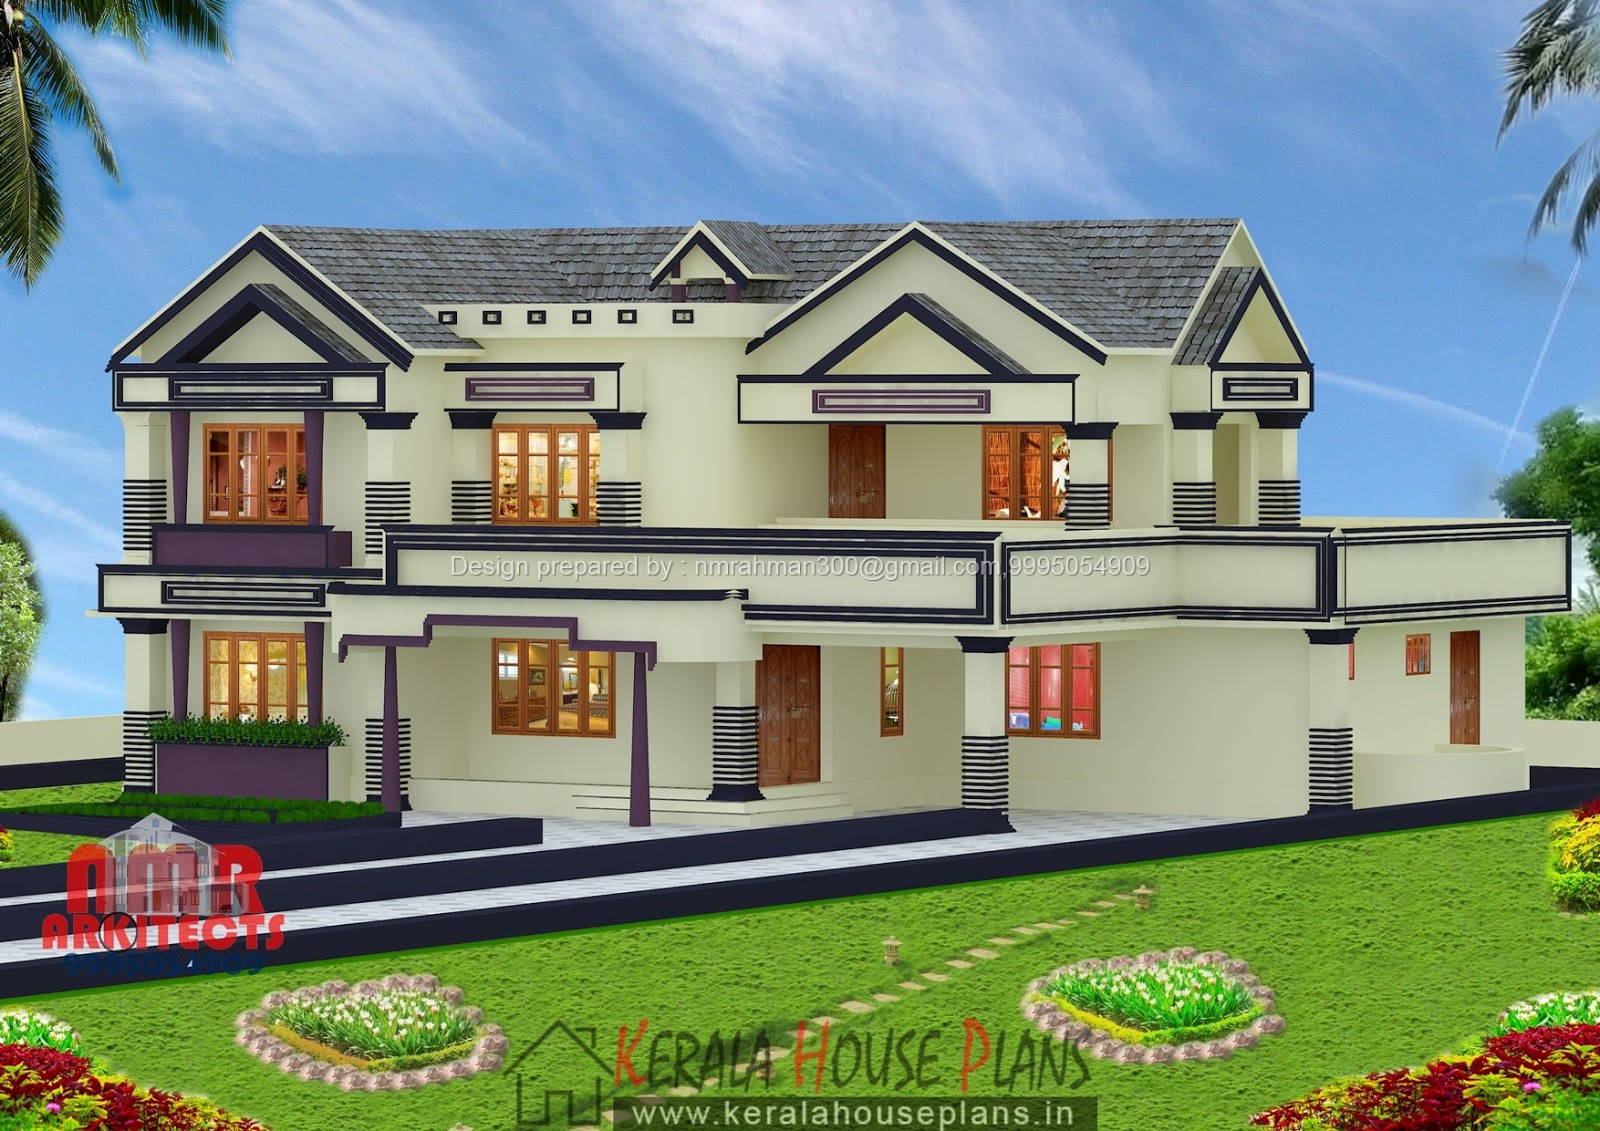 Kerala house plans above 3000 sq ft kerala house plans for Home designs 3000 square feet